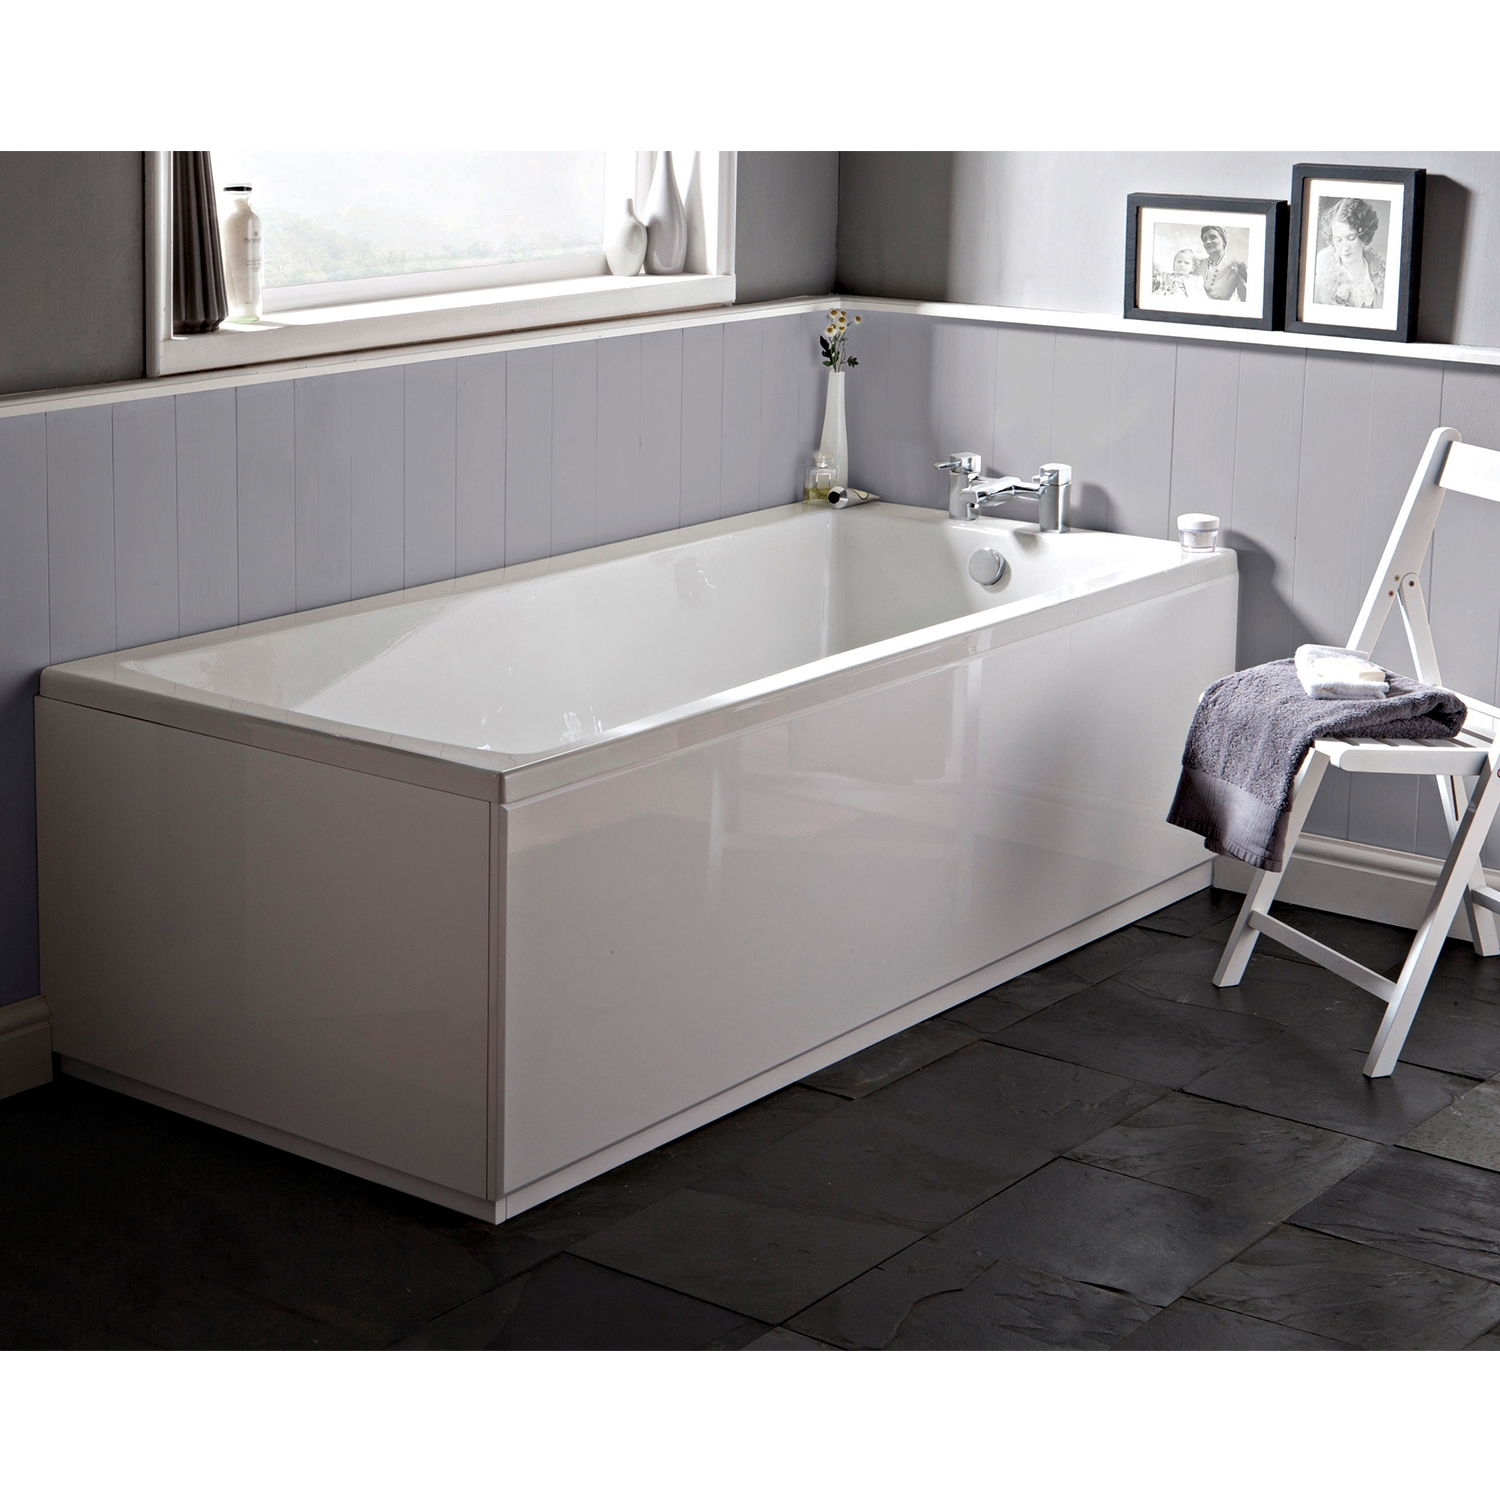 Premier Linton Single Ended Rectangular Bath 1700mm x 750mm - Acrylic